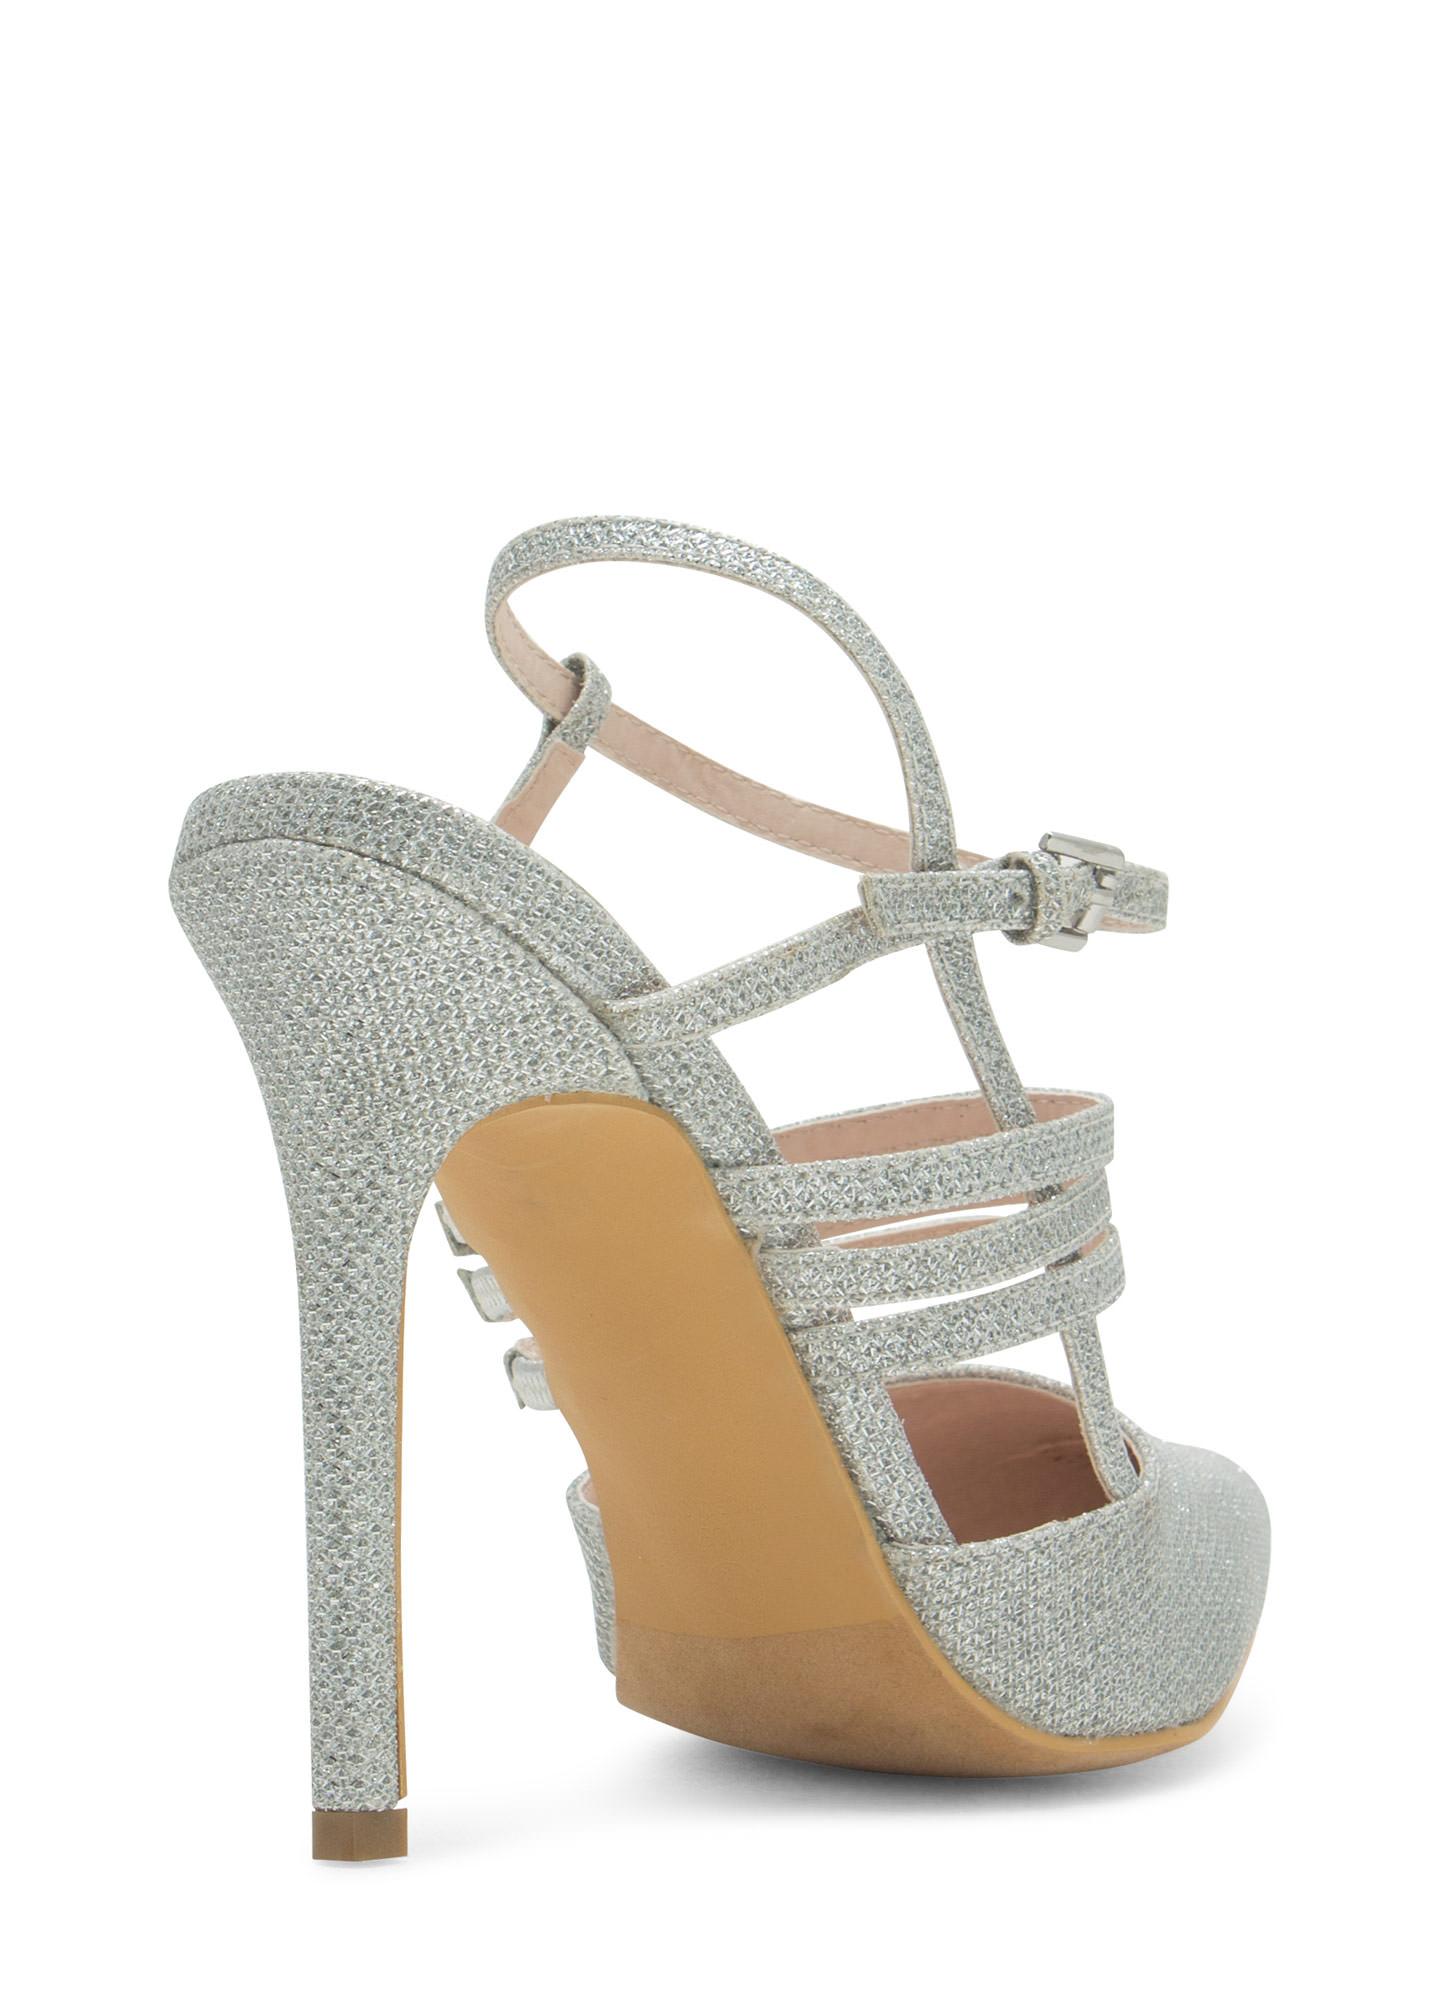 Catch A Sparkle Pointy Heels SILVER (Final Sale)